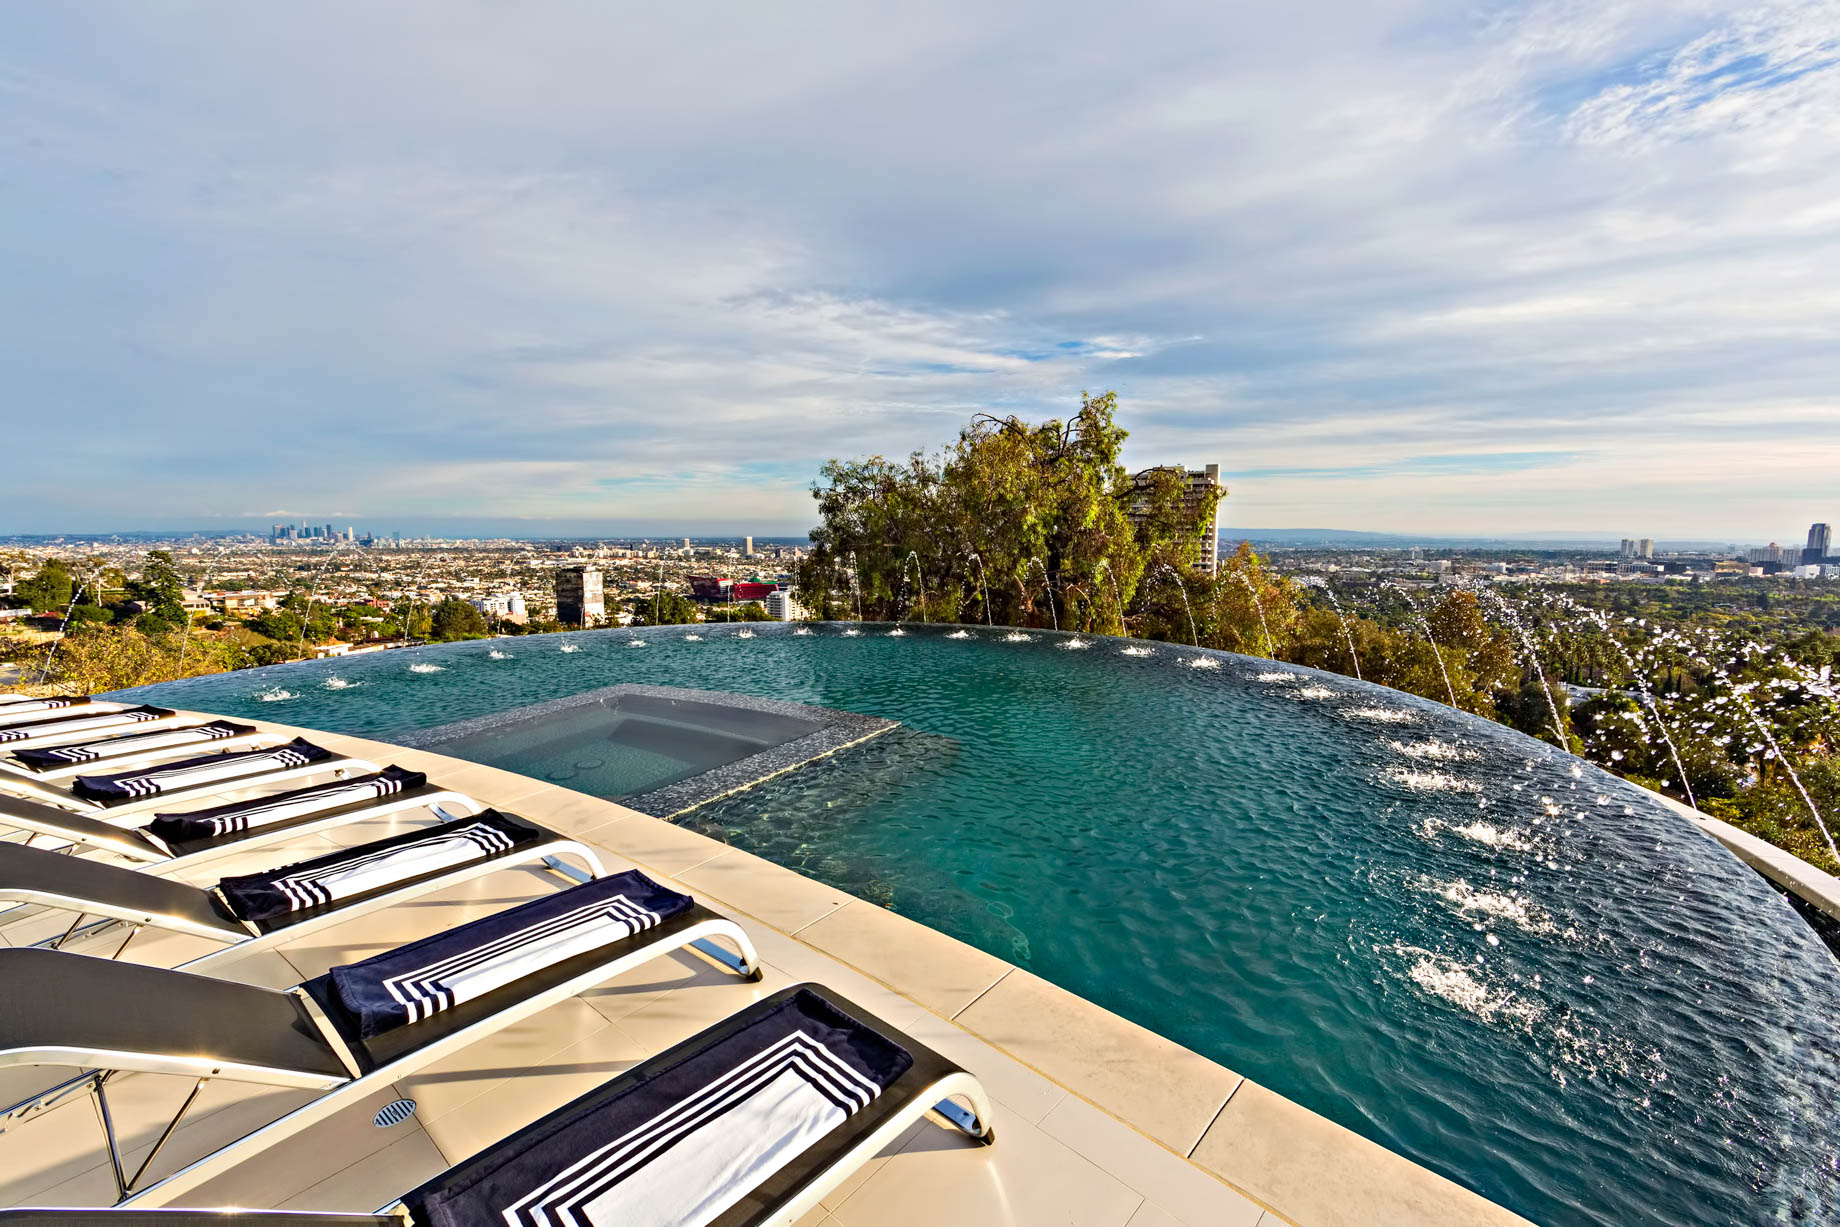 Hollywood Hills Residence - 9380 Sierra Mar Dr, Los Angeles, CA, USA